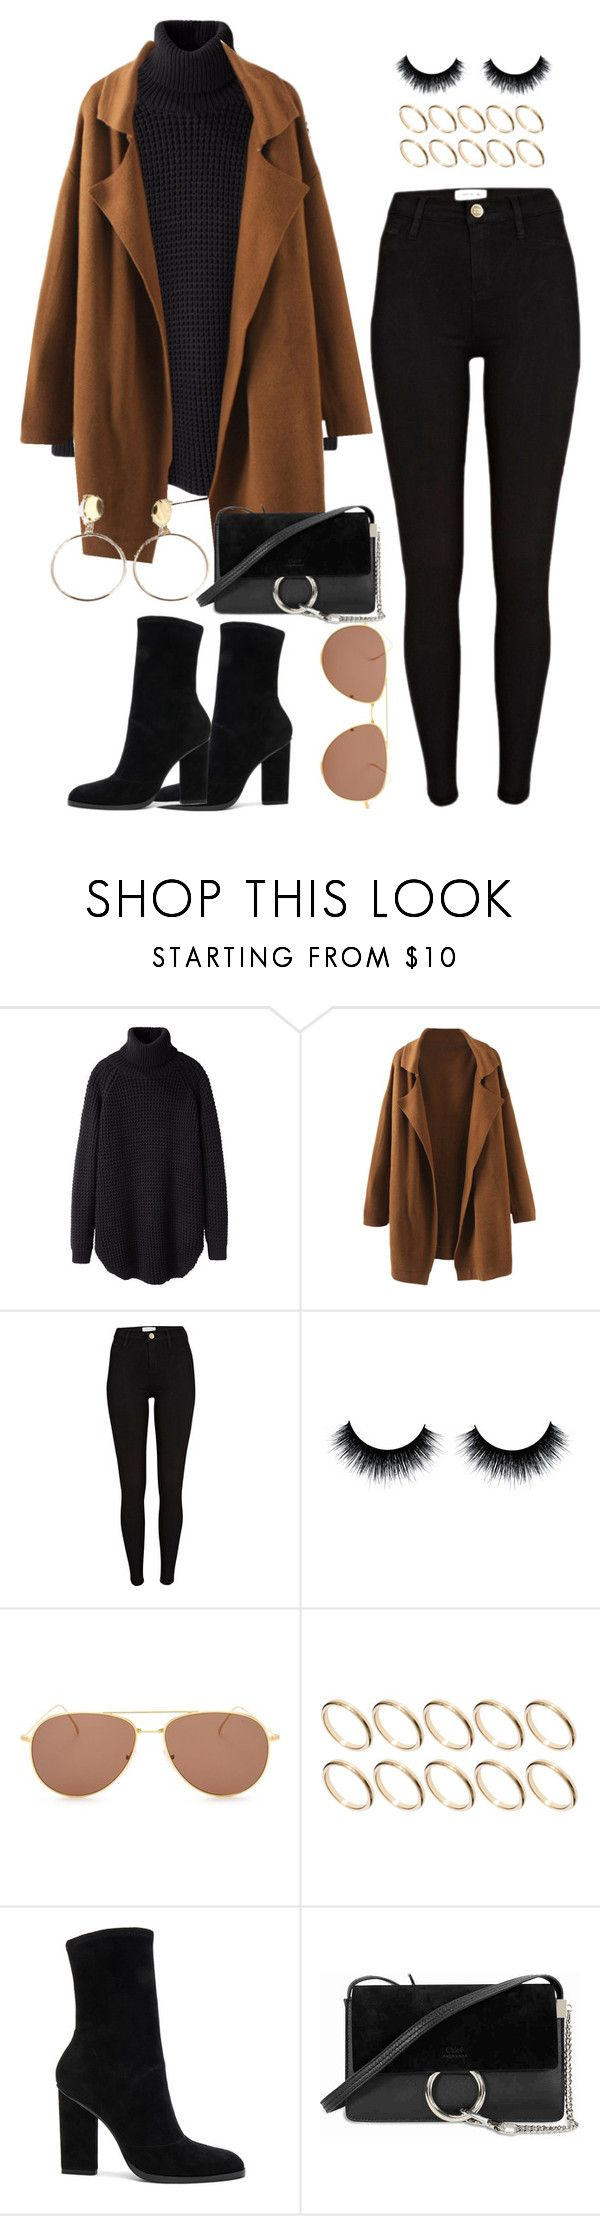 """Untitled #56"" by amanda-thoresson ❤ liked on Polyvore featuring Hope, River Island, Illesteva, ASOS, Alexander Wang and Chloé"